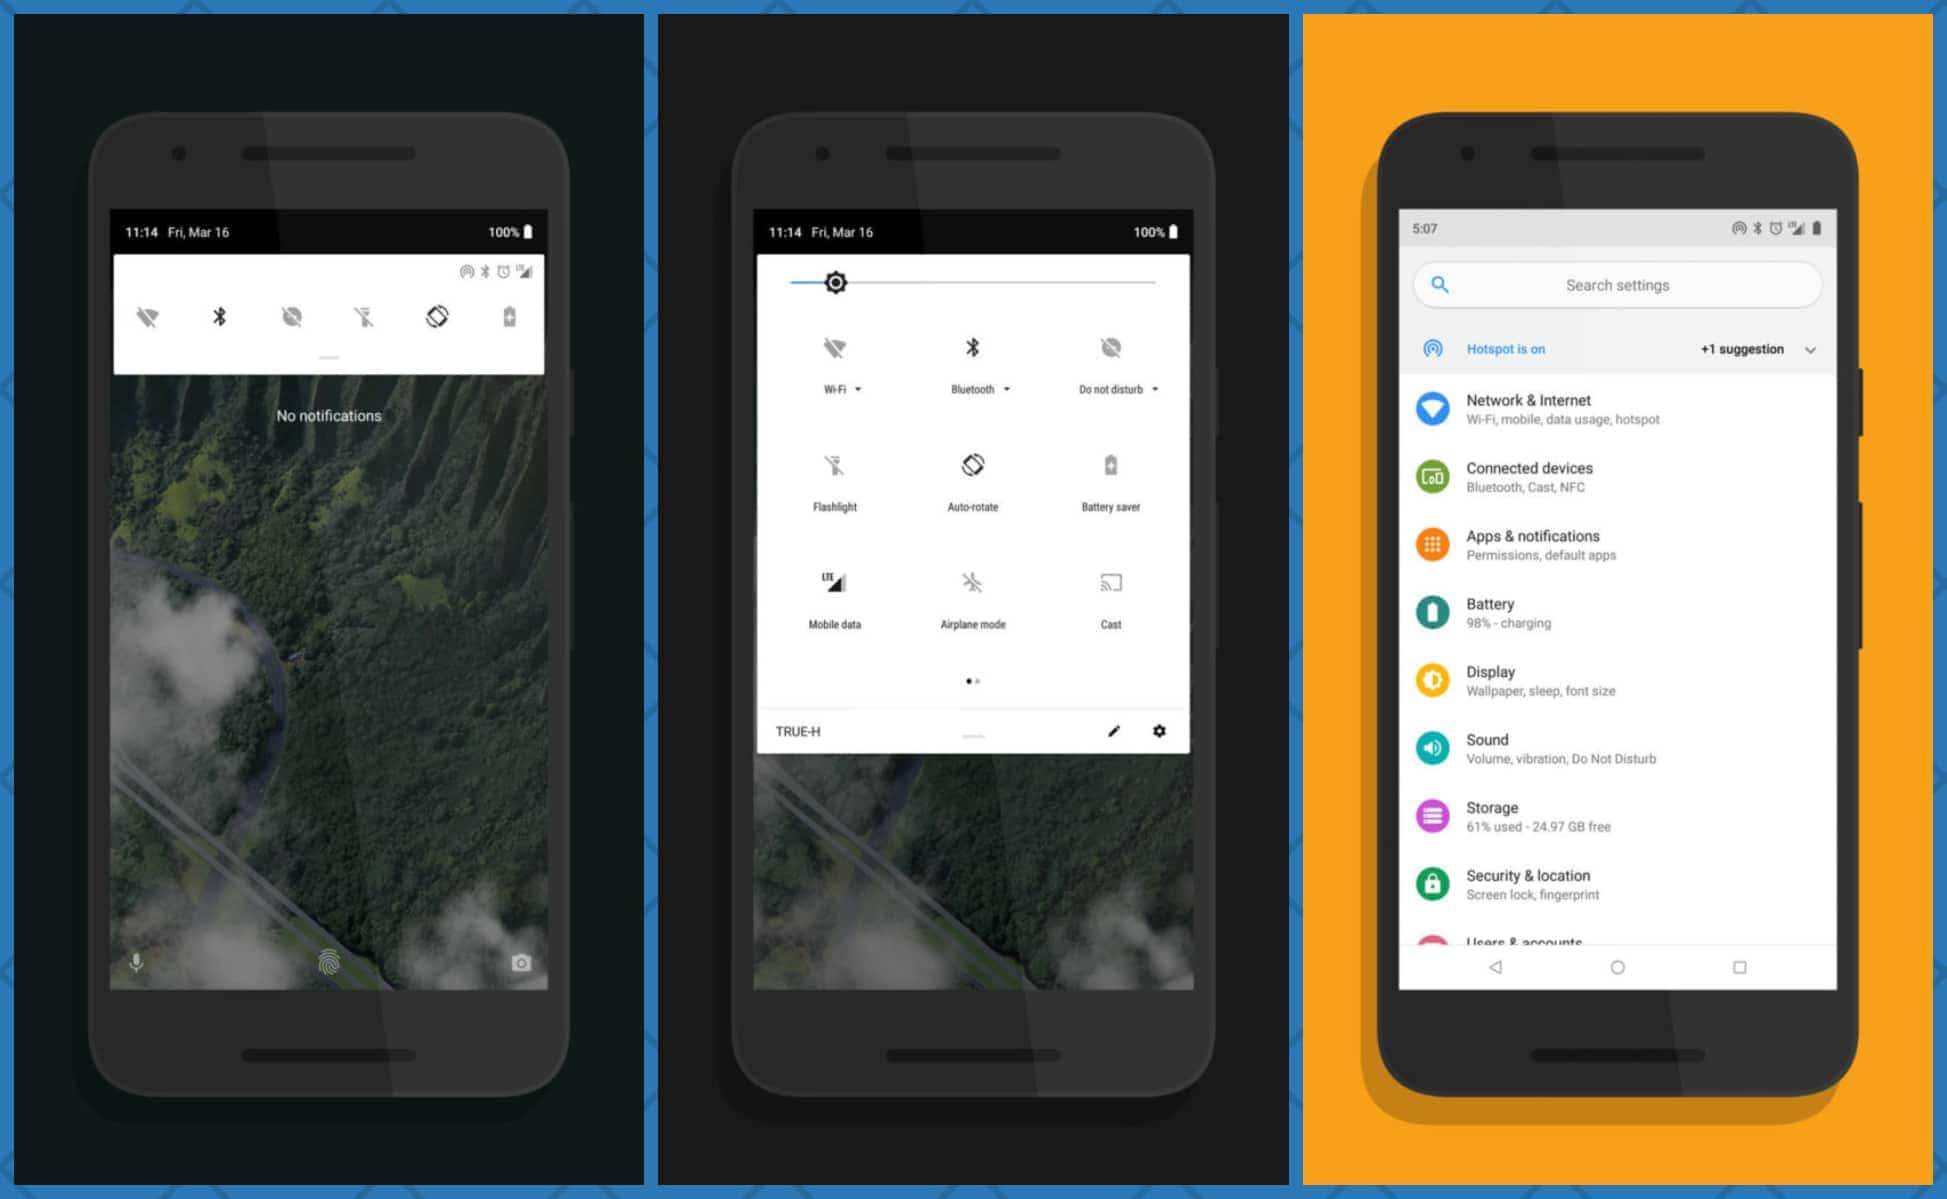 Android P features on OREO devices using Android P ify